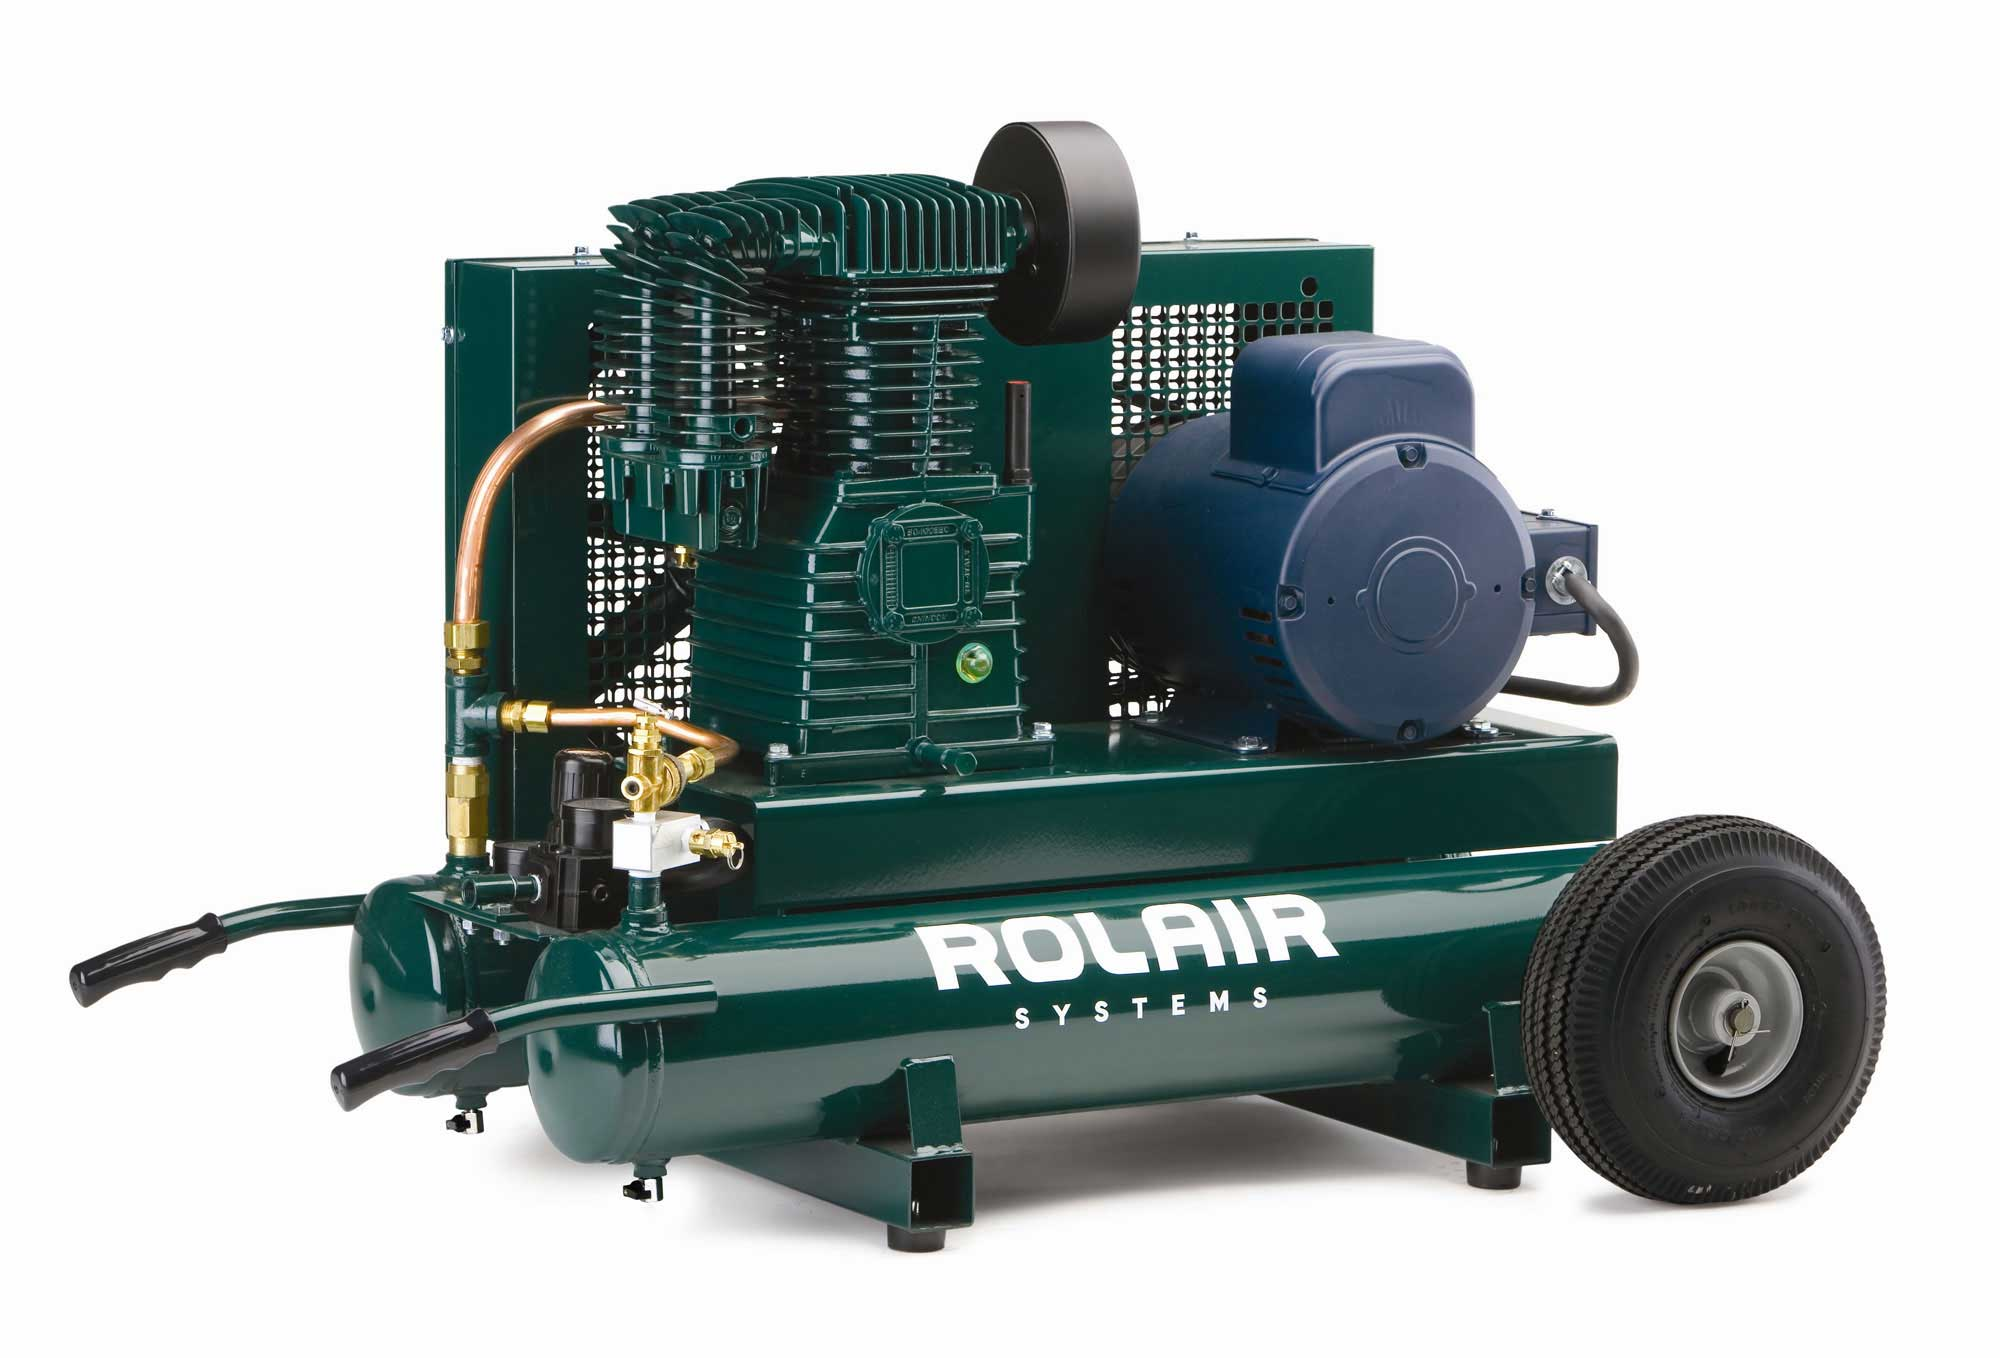 Rolair 3 HP 9 Gallon Electric Portable Air Compressor 3230K24CS